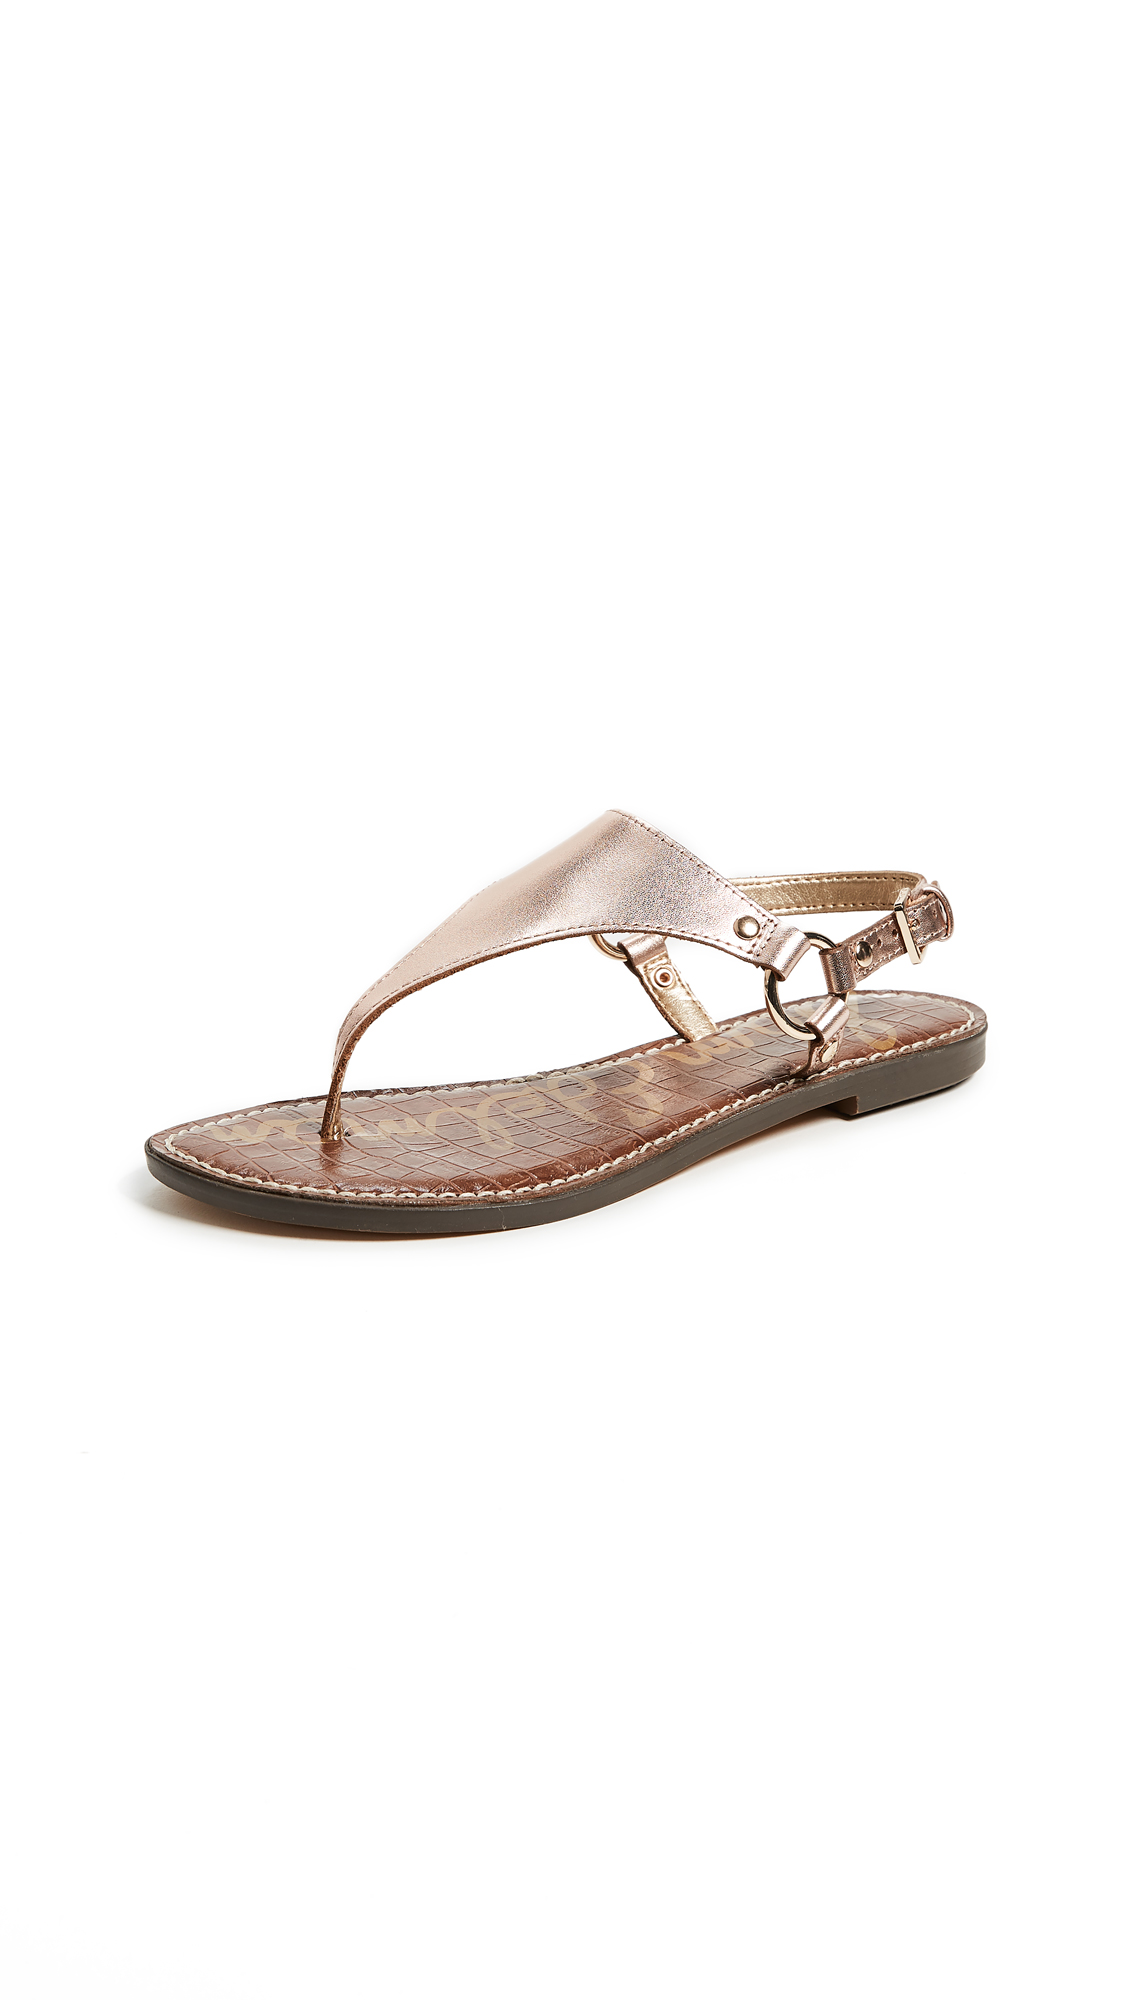 Sam Edelman Greta Flat Sandals - Blush Gold